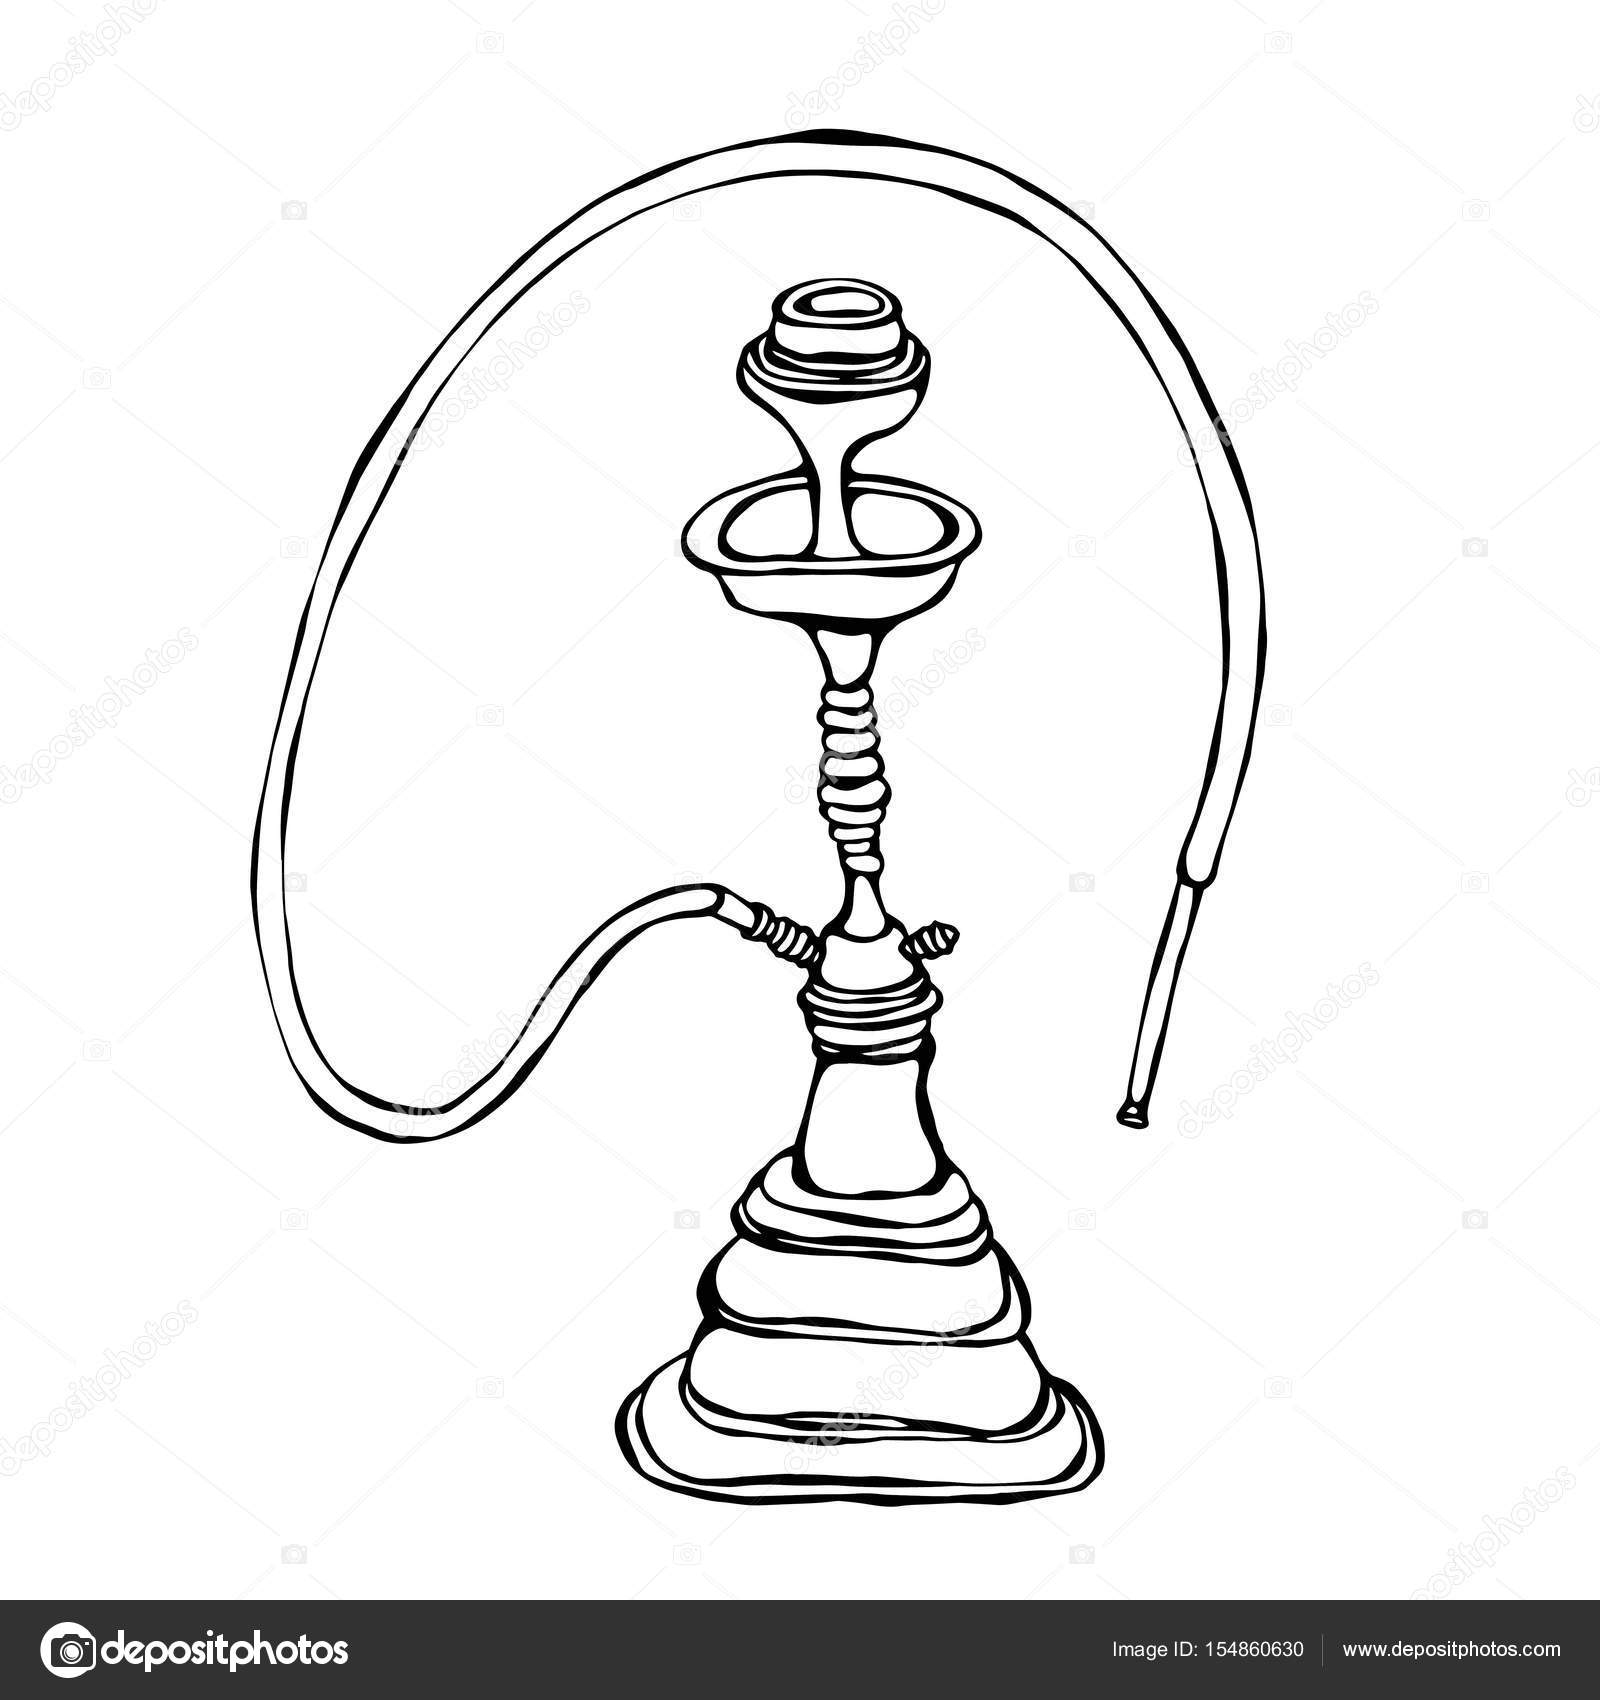 The best free Pipe drawing images. Download from 370 free